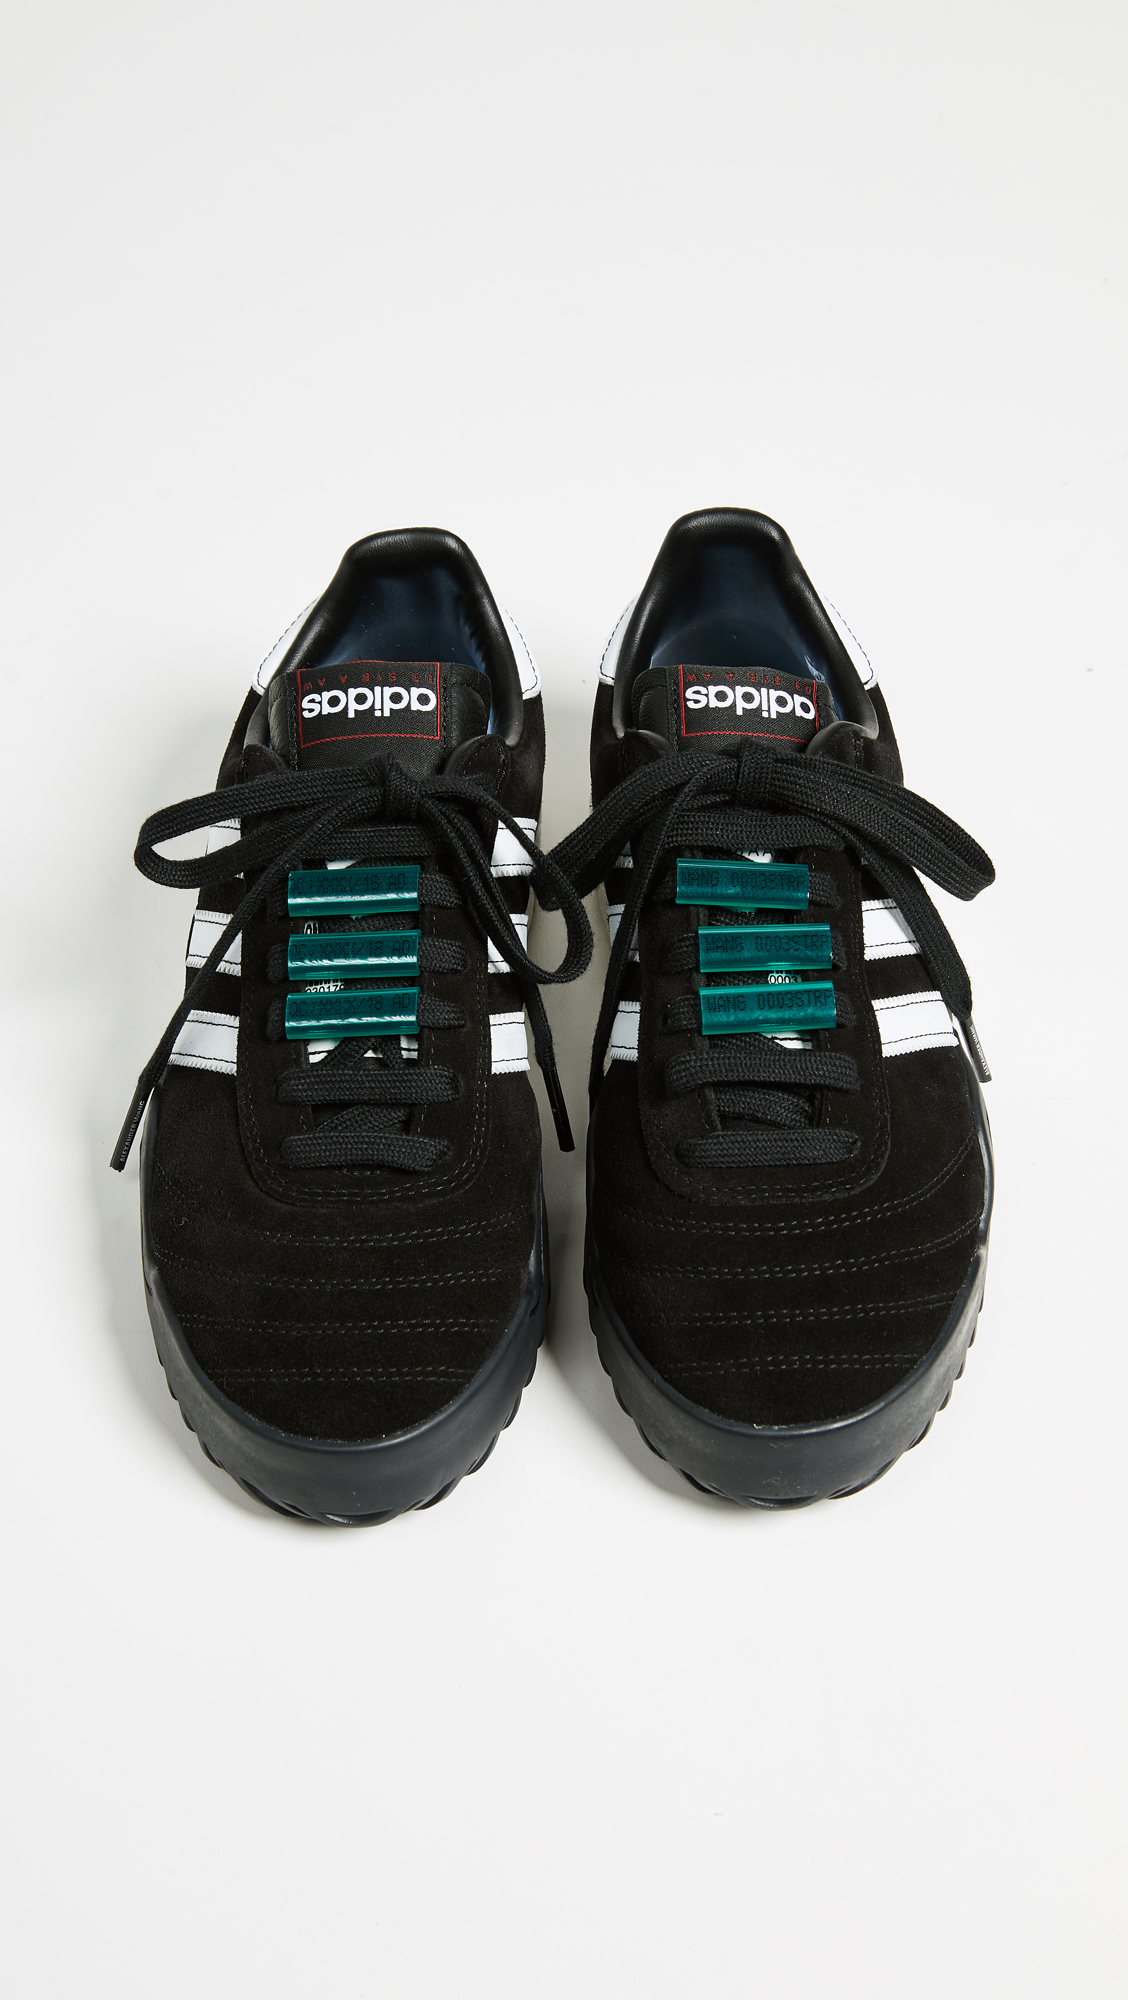 new style 1df82 cde11 adidas Originals by Alexander Wang AW Bball Soccer Sneakers